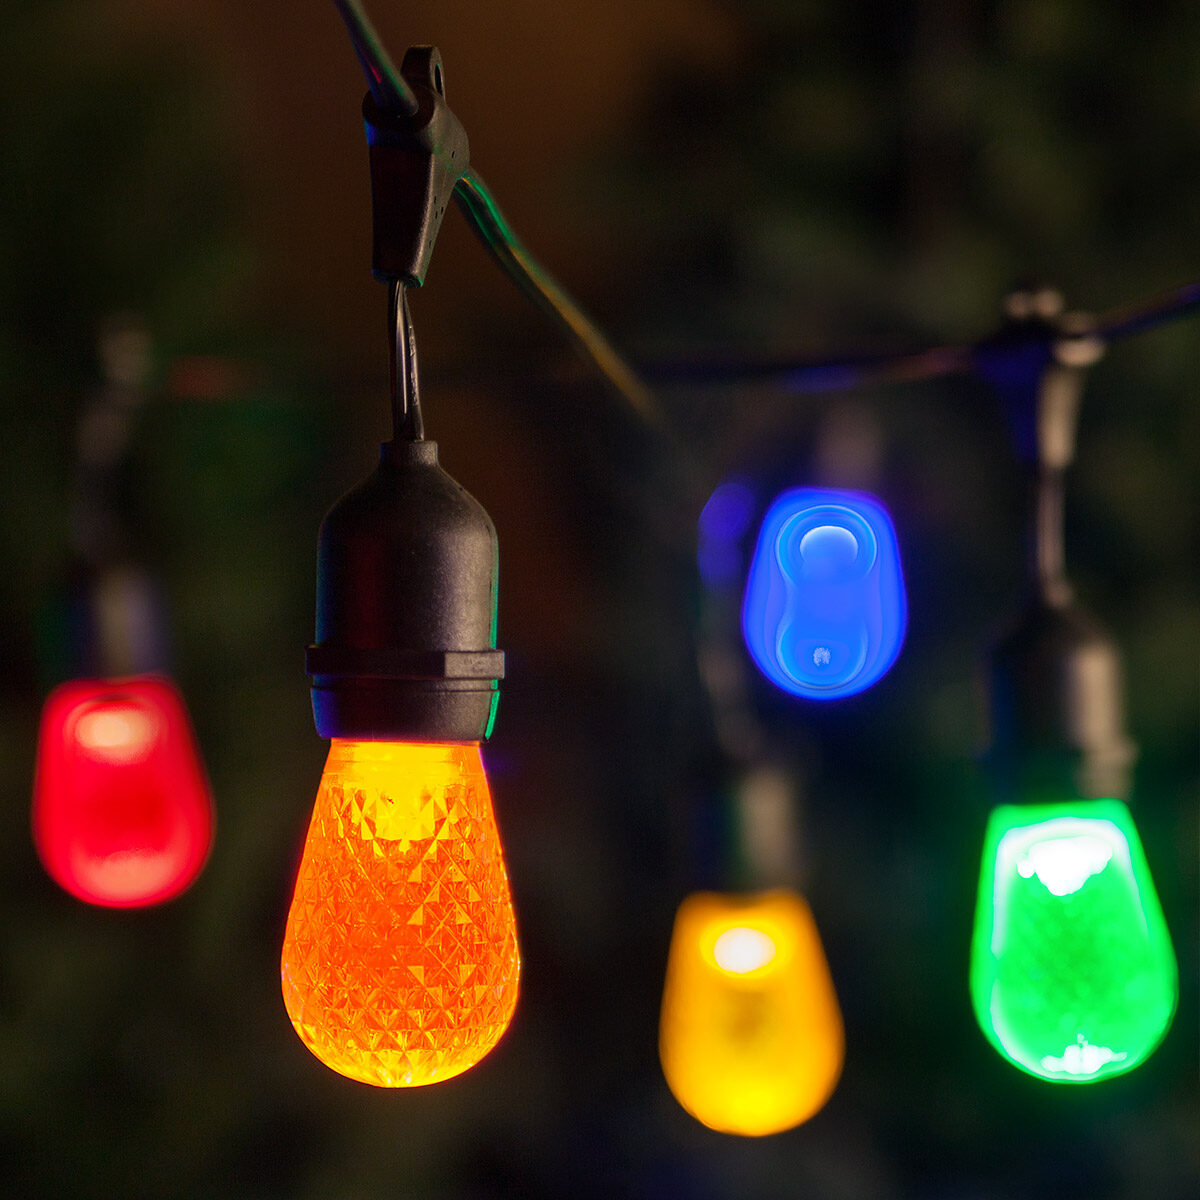 Attirant Commercial Patio String Lights, Multicolor S14 LED Bulbs, Suspended